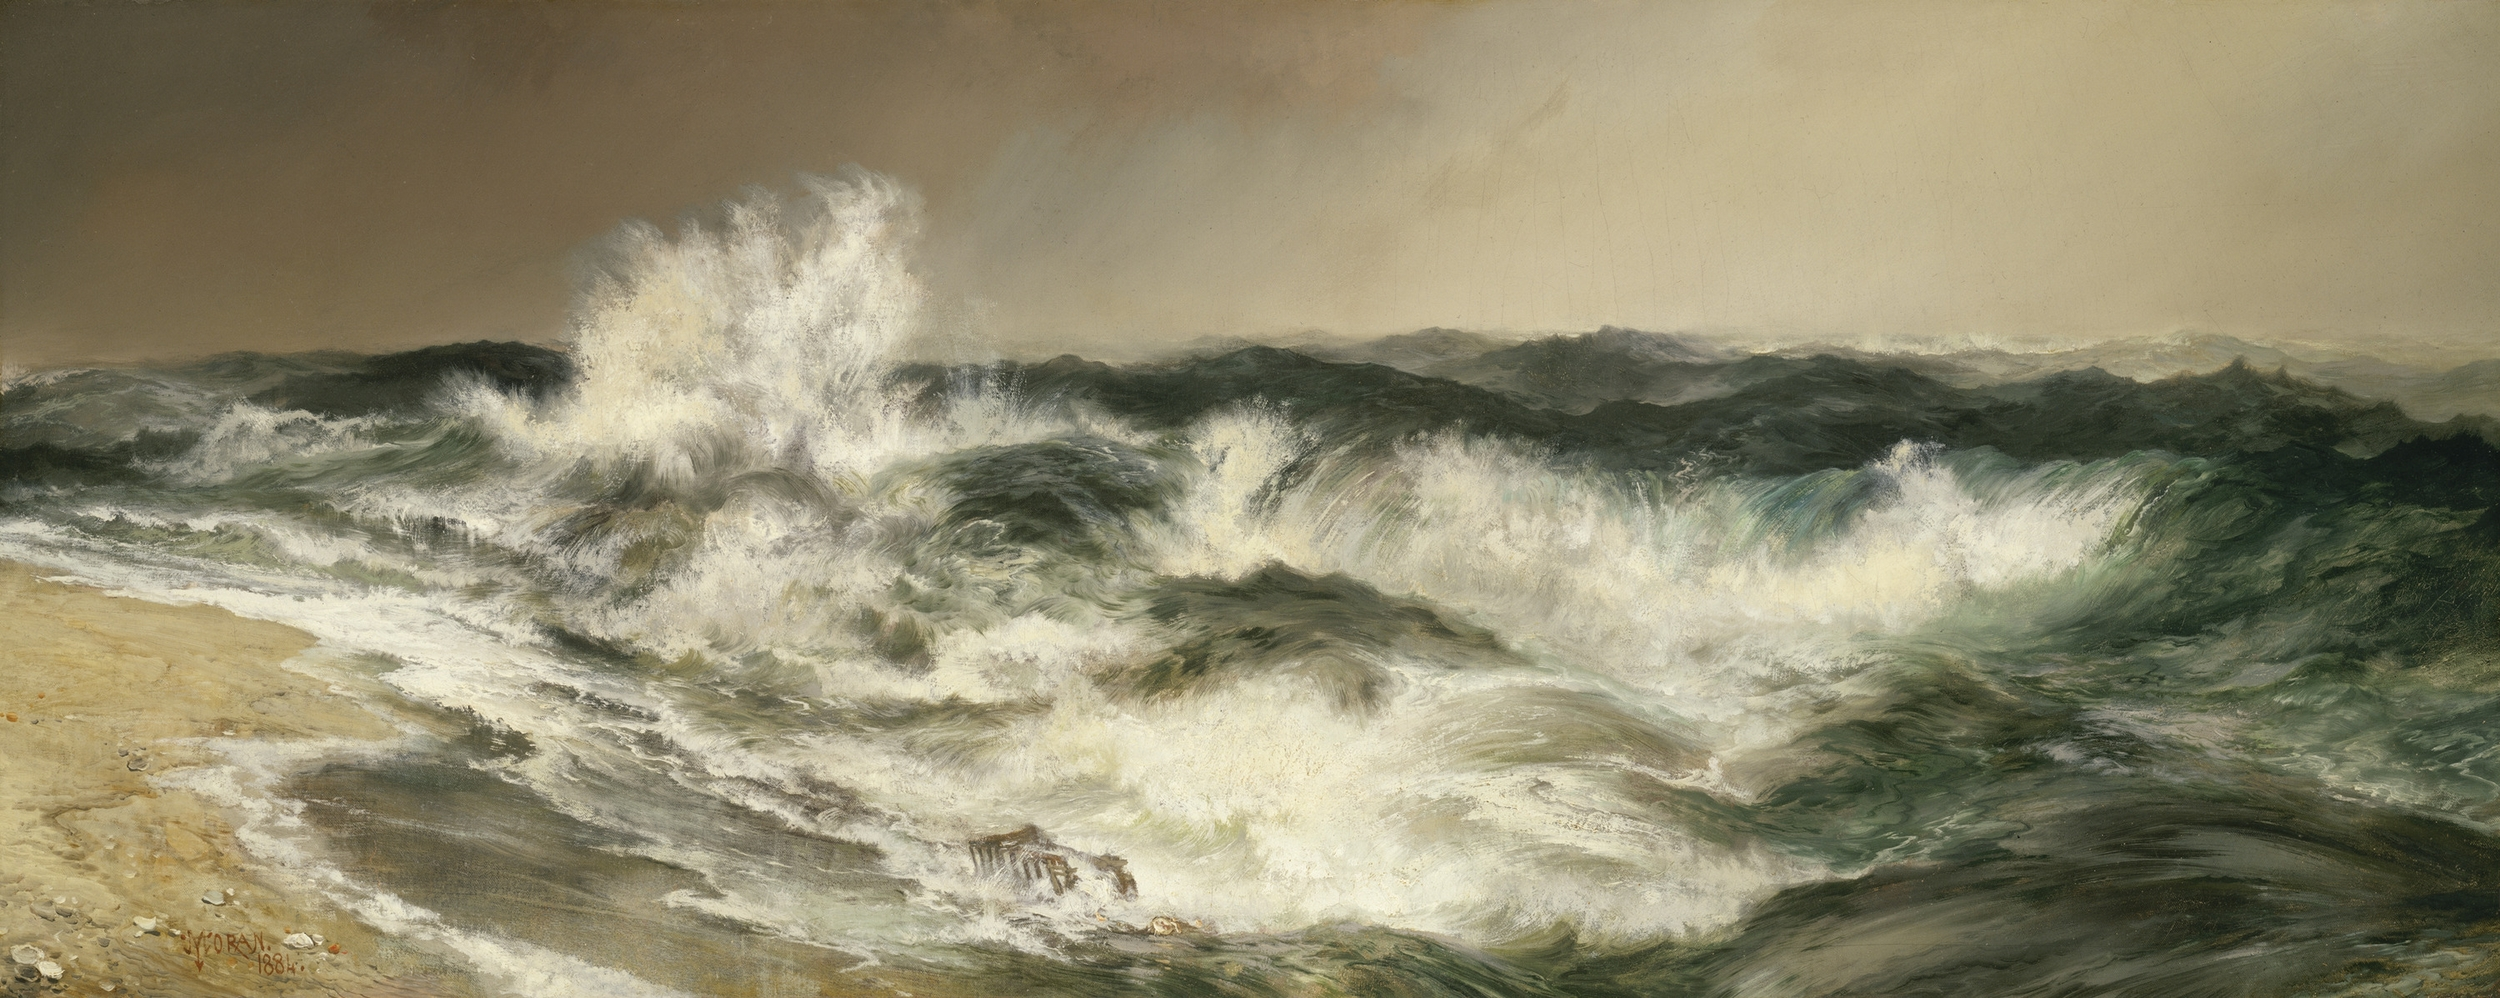 """So that the monotonous fall of the waves on the beach, which for the most part beat a measured and soothing tattoo to her thoughts and seemed consolingly to repeat over and over again as she sat with the children the words of some old cradle song, murmured by nature, 'I am guarding you—I am your support,' but at other times suddenly and unexpectedly, especially when her mind raised itself slightly from the task actually in hand, had no such kindly meaning, but like a ghostly roll of drums remorselessly beat the measure of life, made one think of the destruction of the island and its engulfment in the sea, and warned her whose day had slipped past in one quick doing after another that it was all ephemeral as a rainbow—this sound which had been obscured and concealed under the other sounds suddenly thundered hollow in her ears and made her look up with an impulse of terror.""   Virigina Woolf,  To The Lighthouse   (Thomas Moran's  The Much Resounding Sea )"